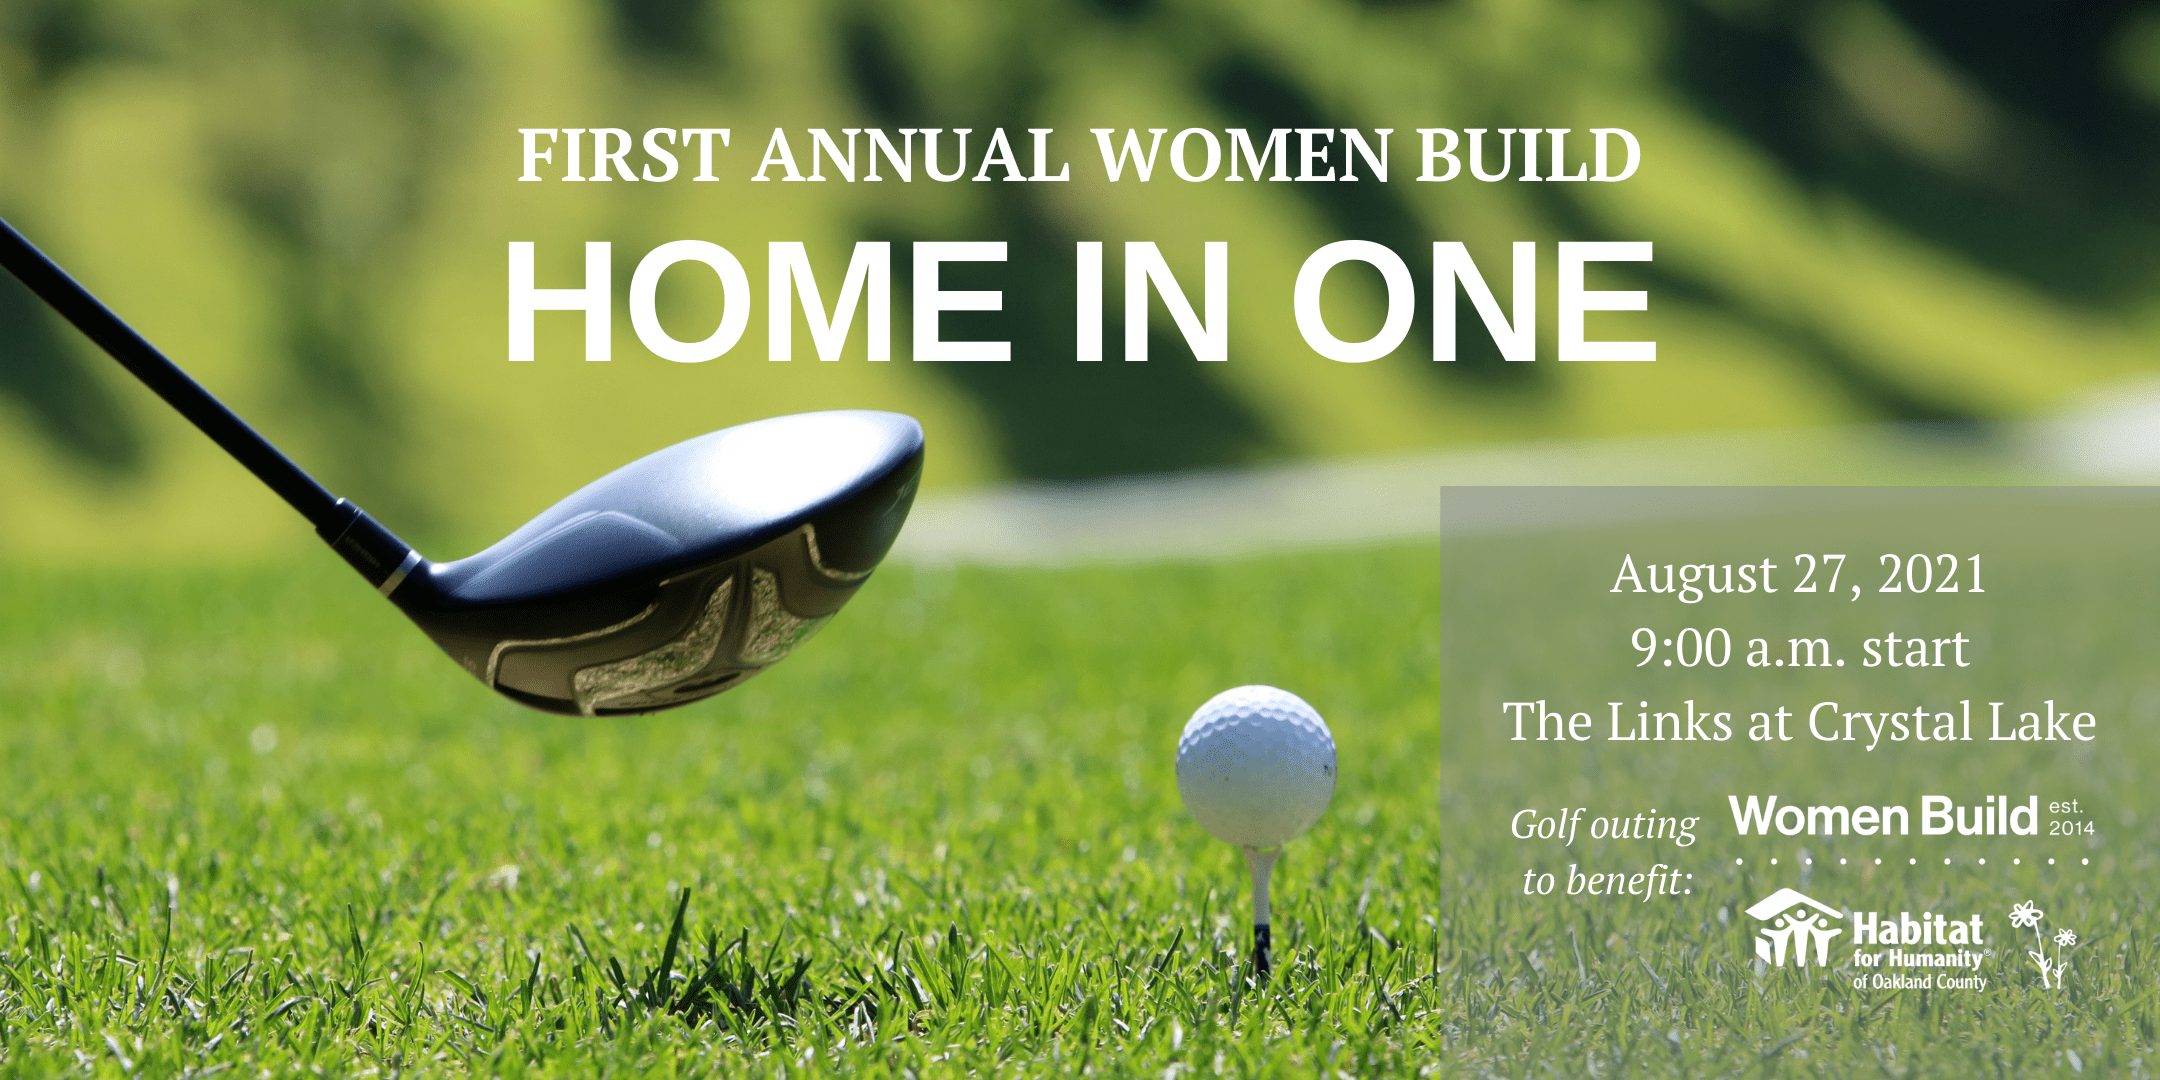 First Annual Women Build Home in One Golf Event